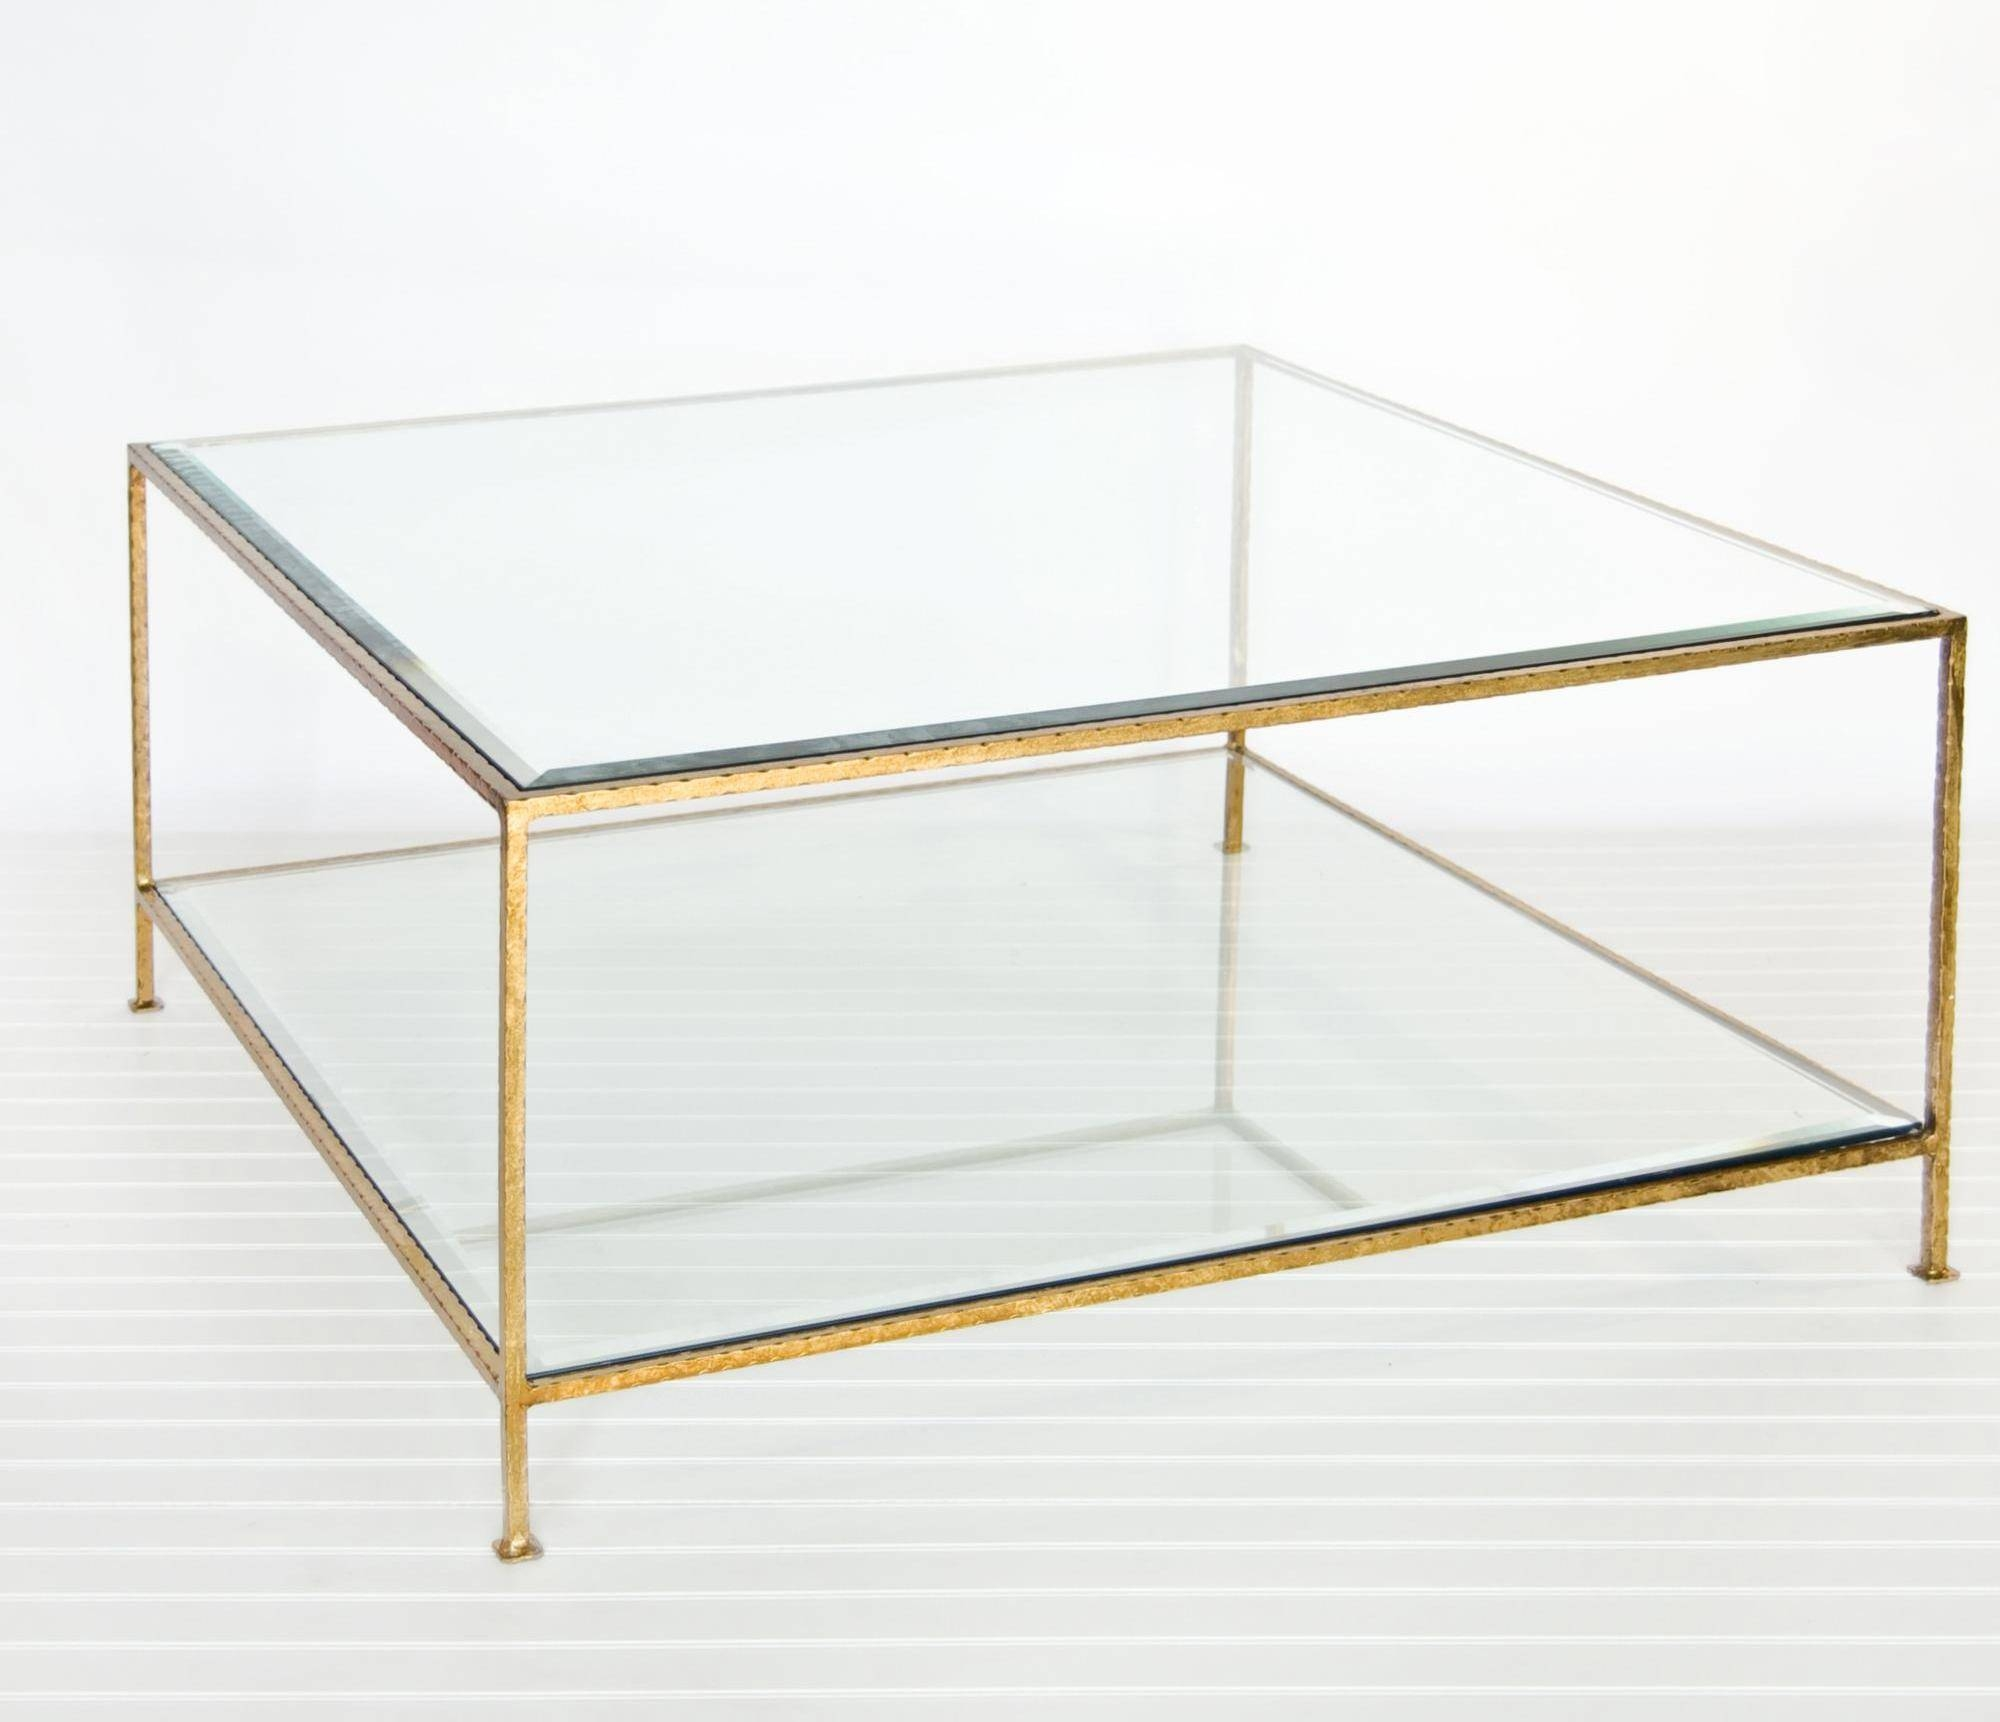 Coffee Table: Enchanting Square Glass Coffee Table Design Ideas throughout Metal Glass Coffee Tables (Image 5 of 30)